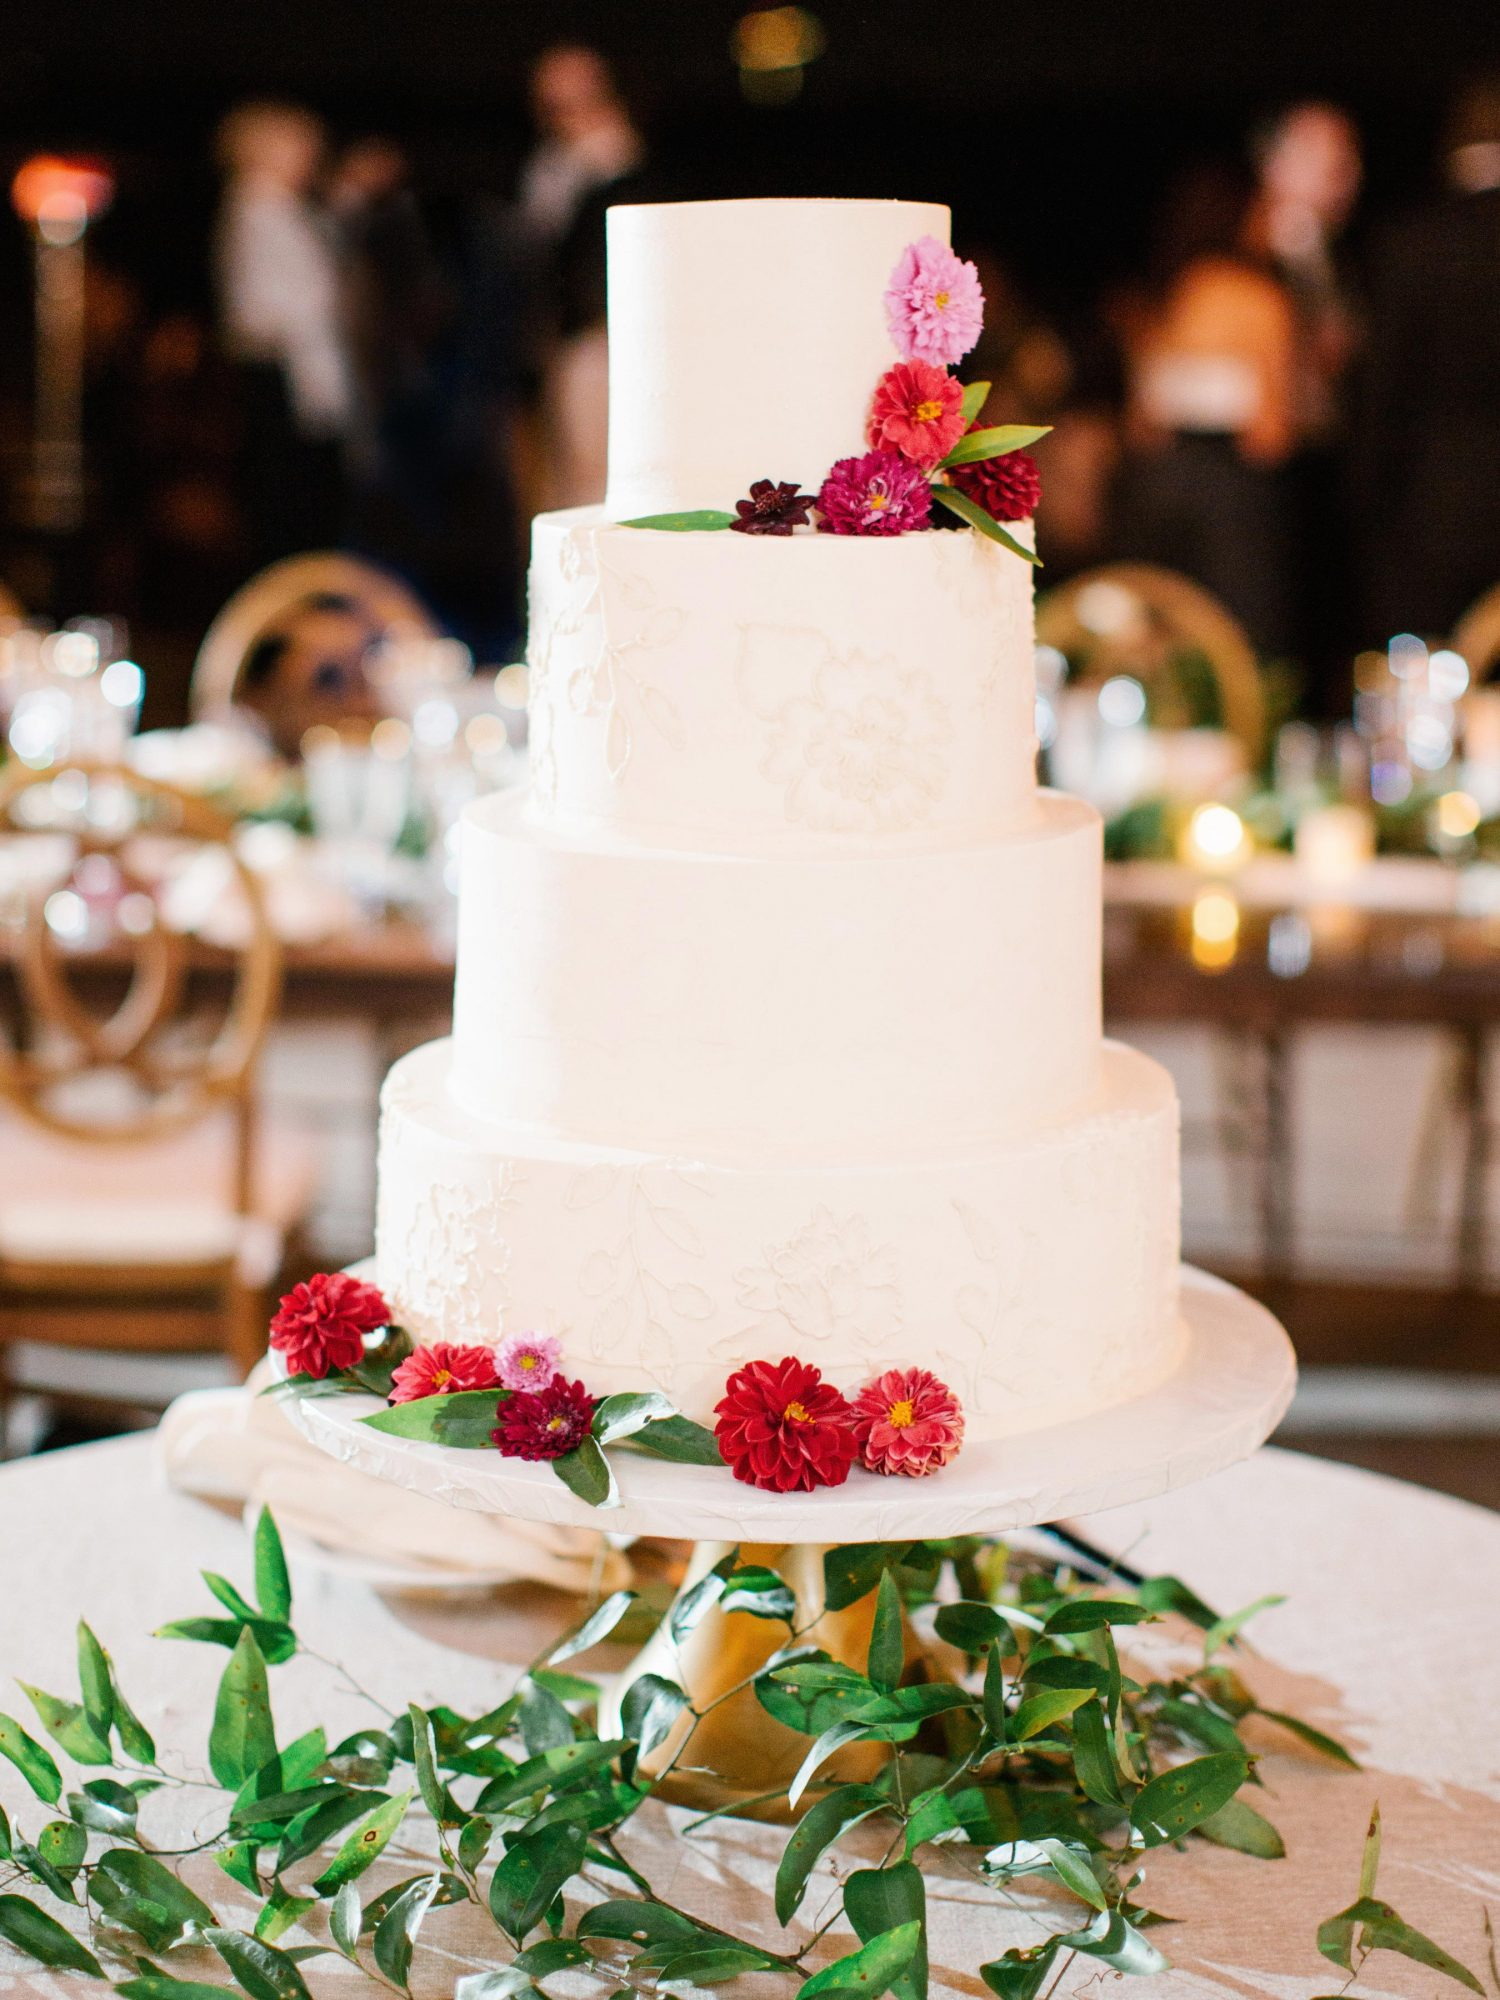 Stationery-Inspired Wedding Cake